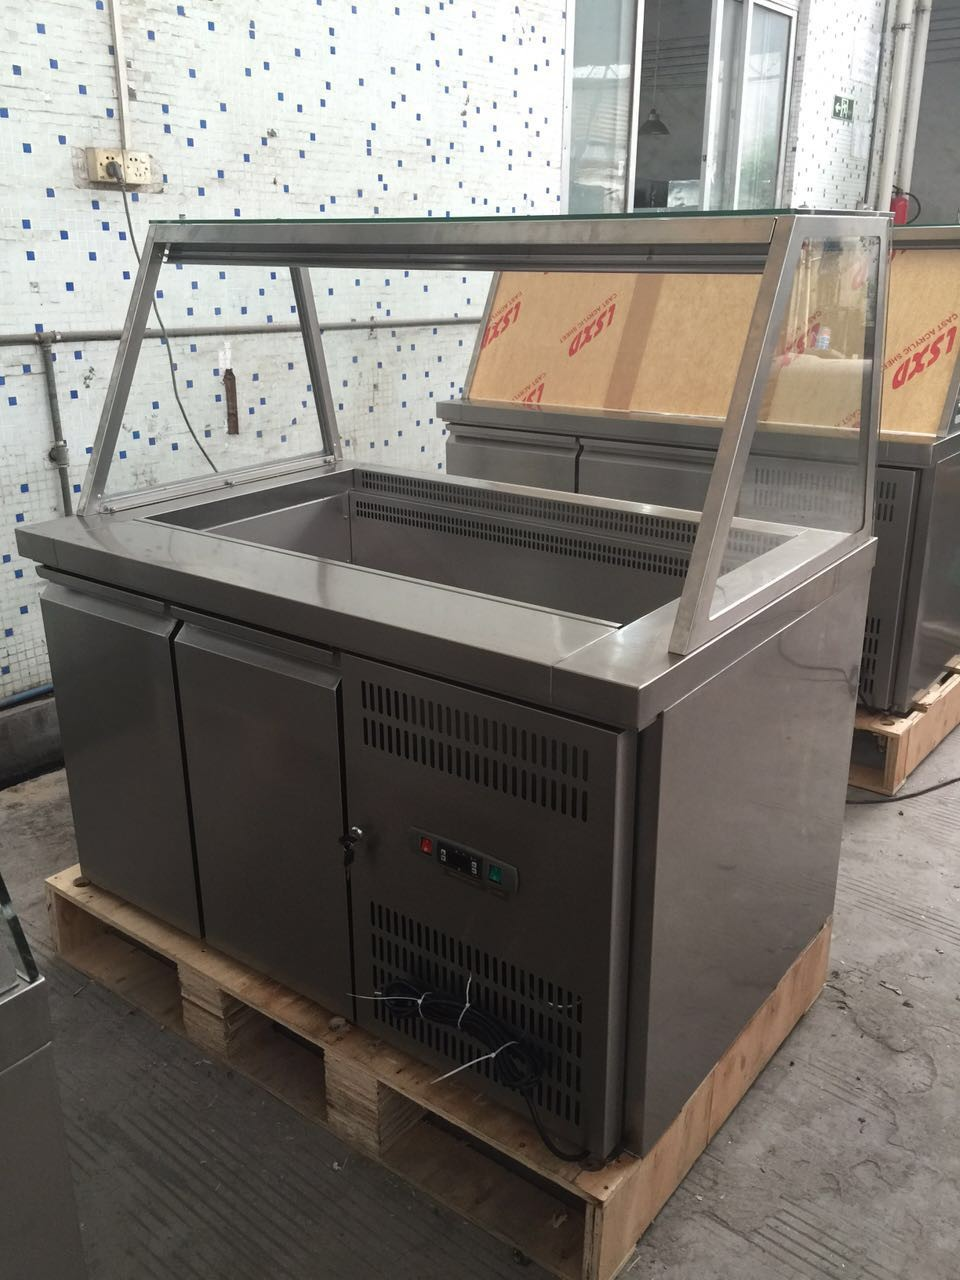 restaurant stainless steel salad table refrigerator